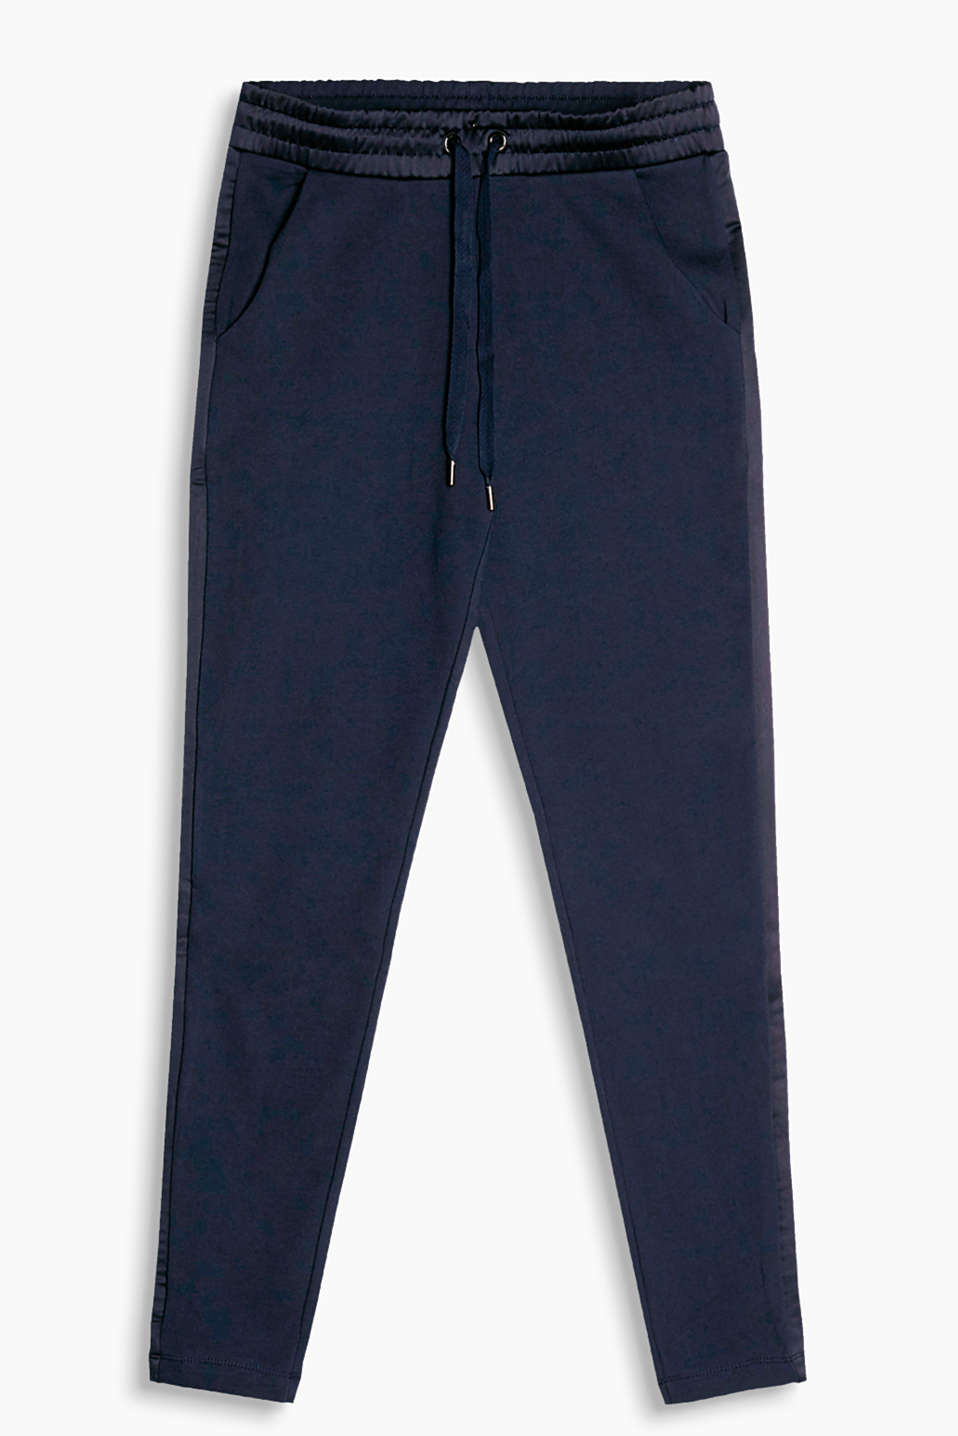 Tracksuit bottoms with an elasticated waistband and tuxedo stripes in shimmering satin fabric